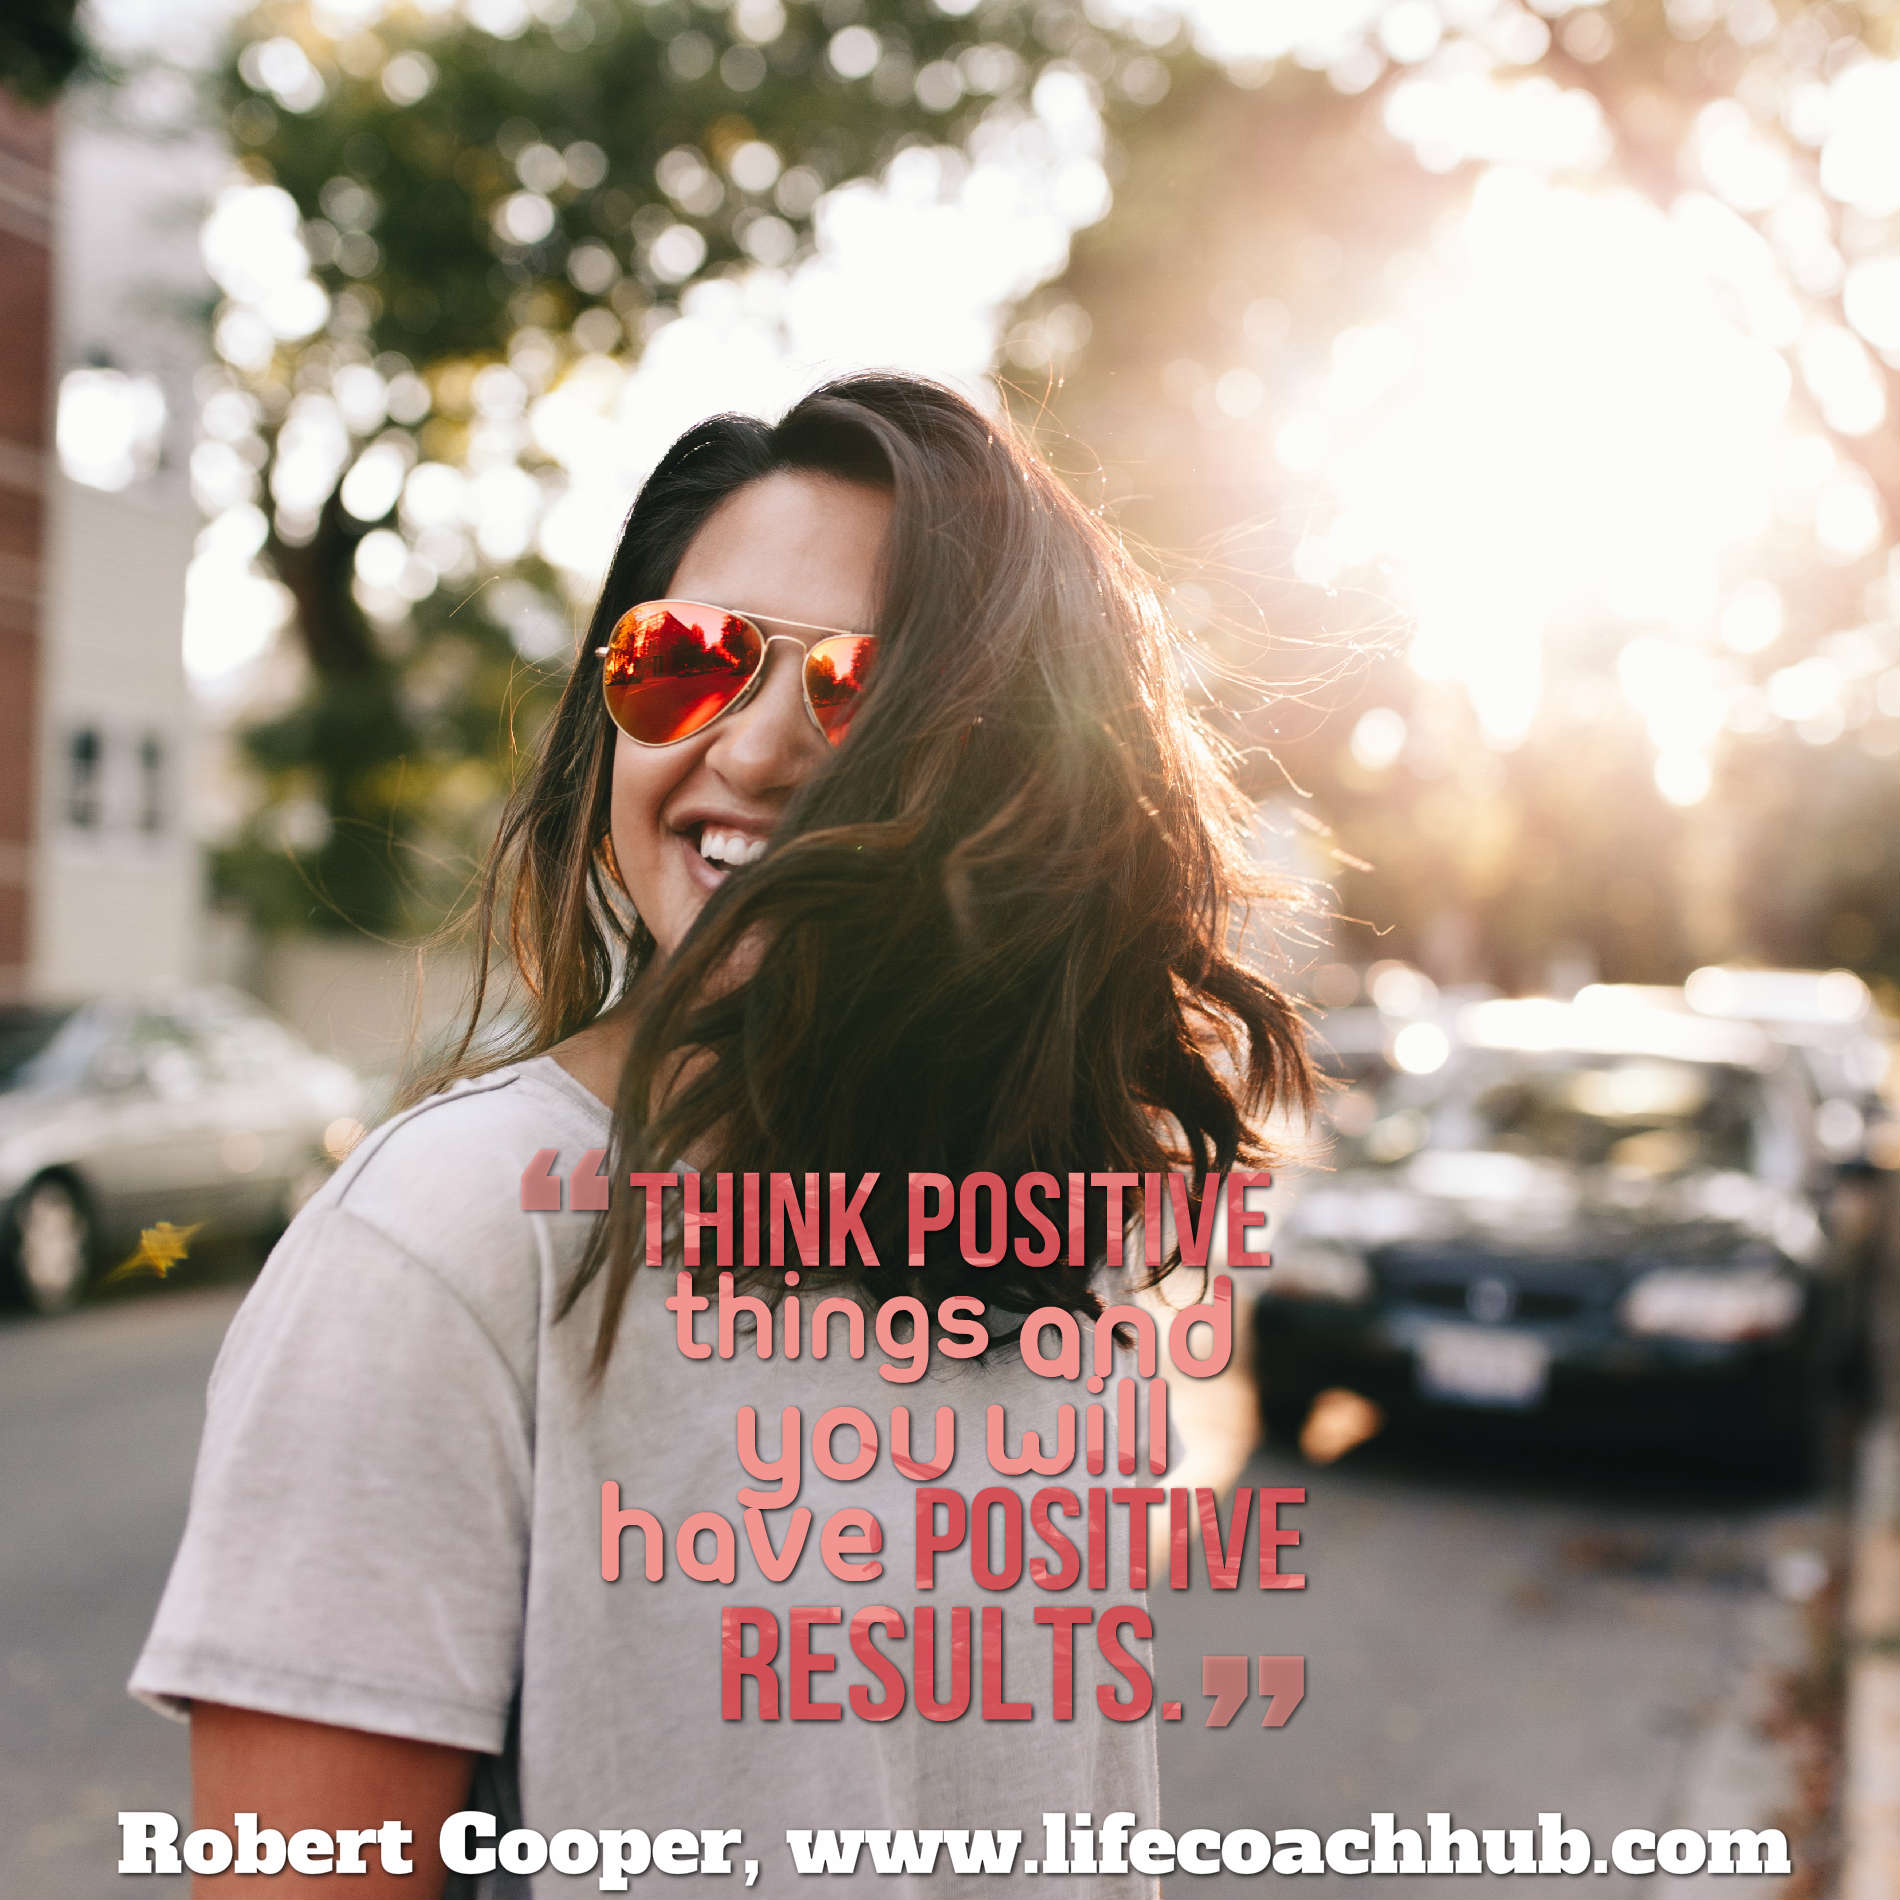 Think positive things and you will have positive results